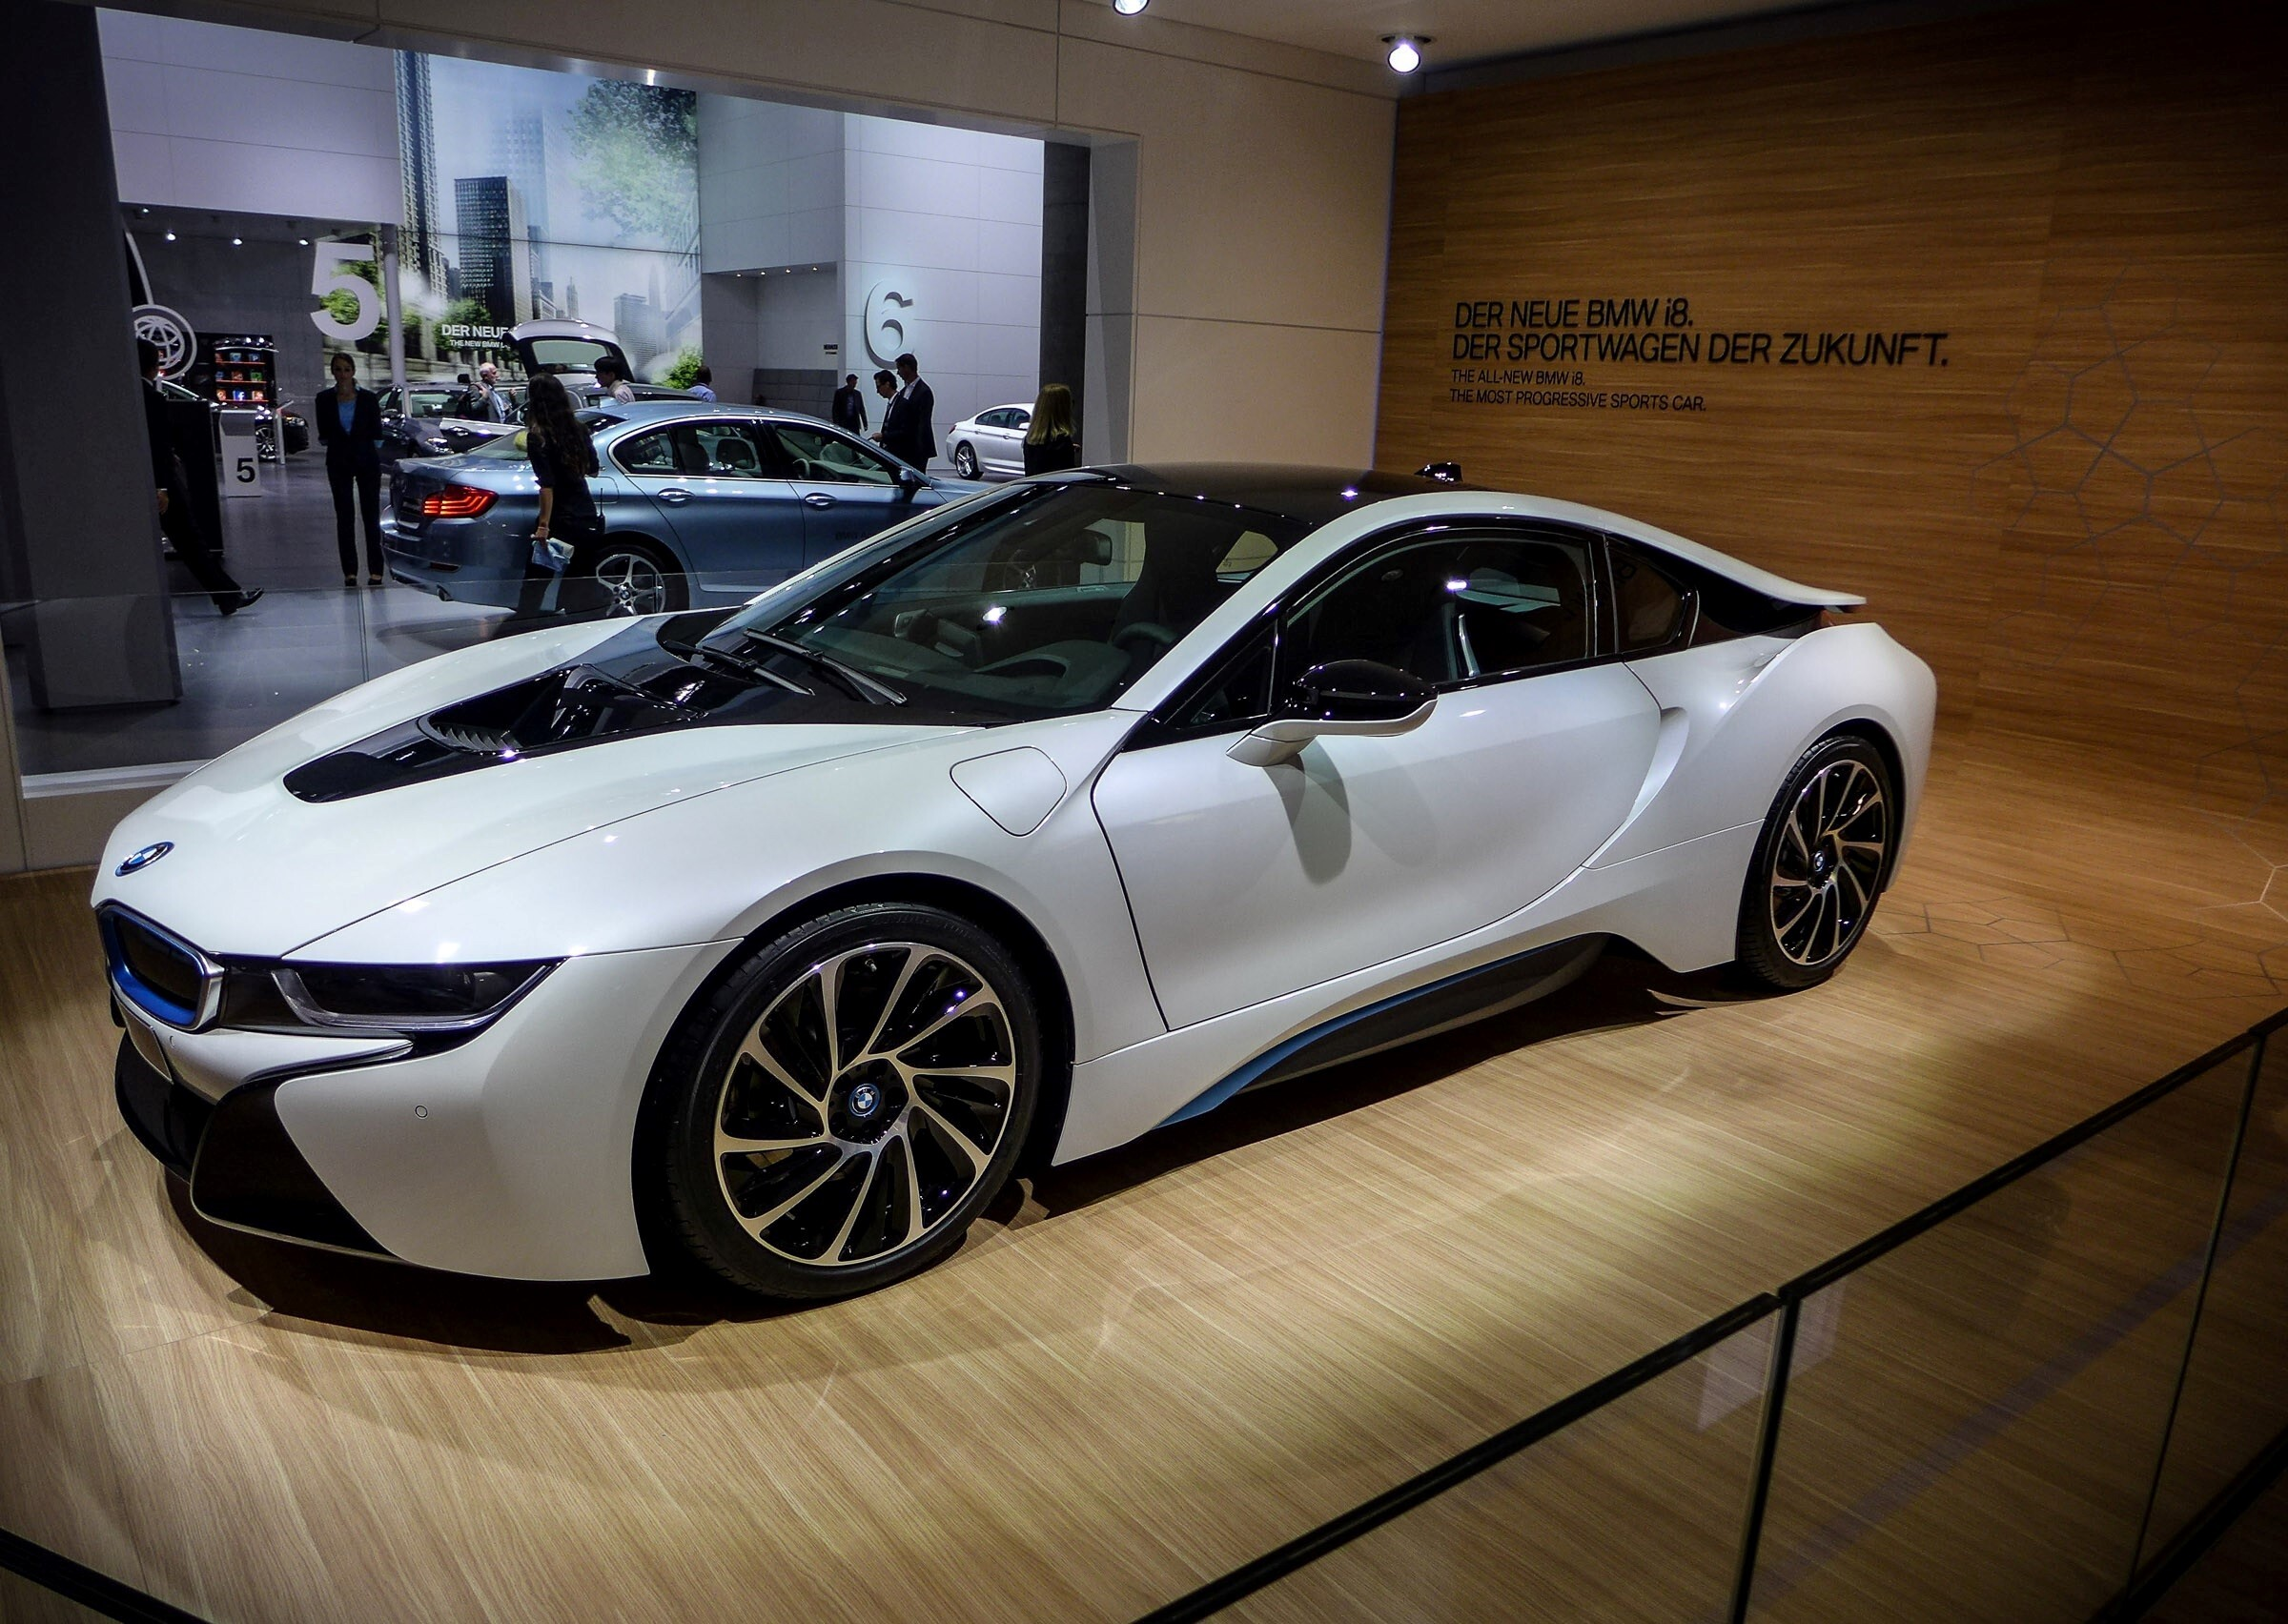 2570 Download 3069 Views Super New 2013 Crystal White BMW I8 Luxury Two  Seater Cars Wallpapers